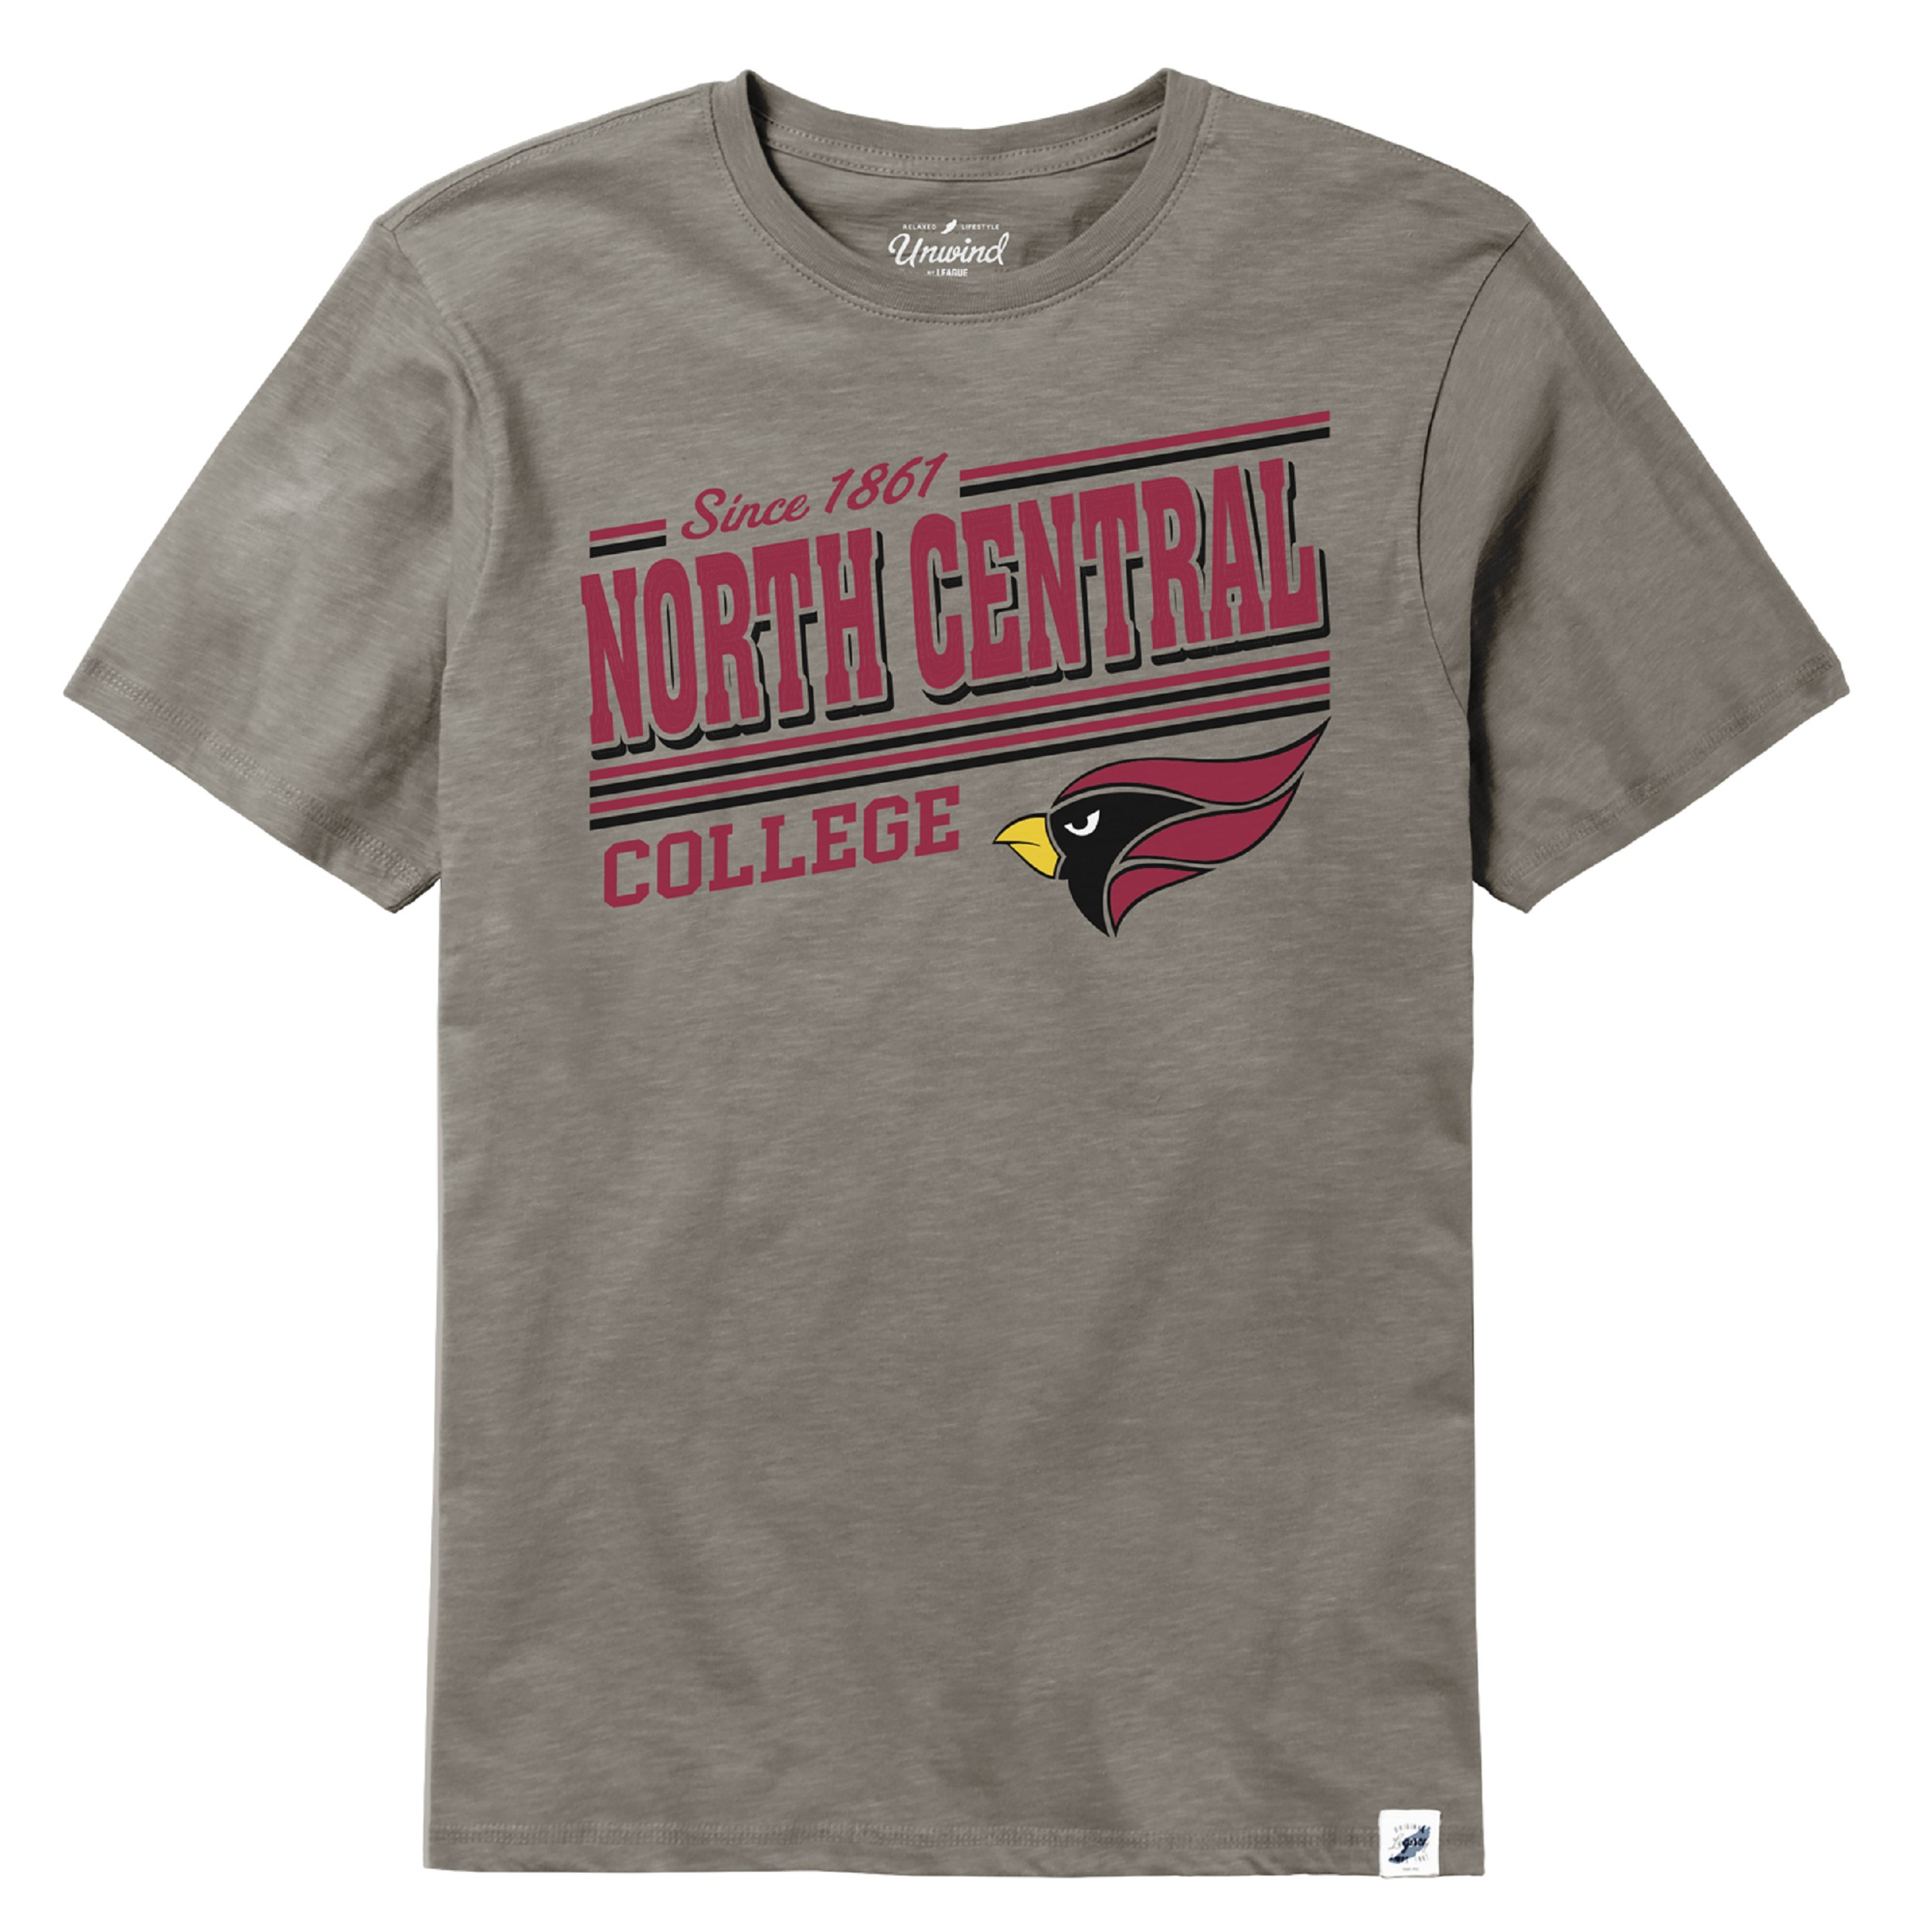 Image for the North Central College Slub Short Sleeve Tee by Legacy product